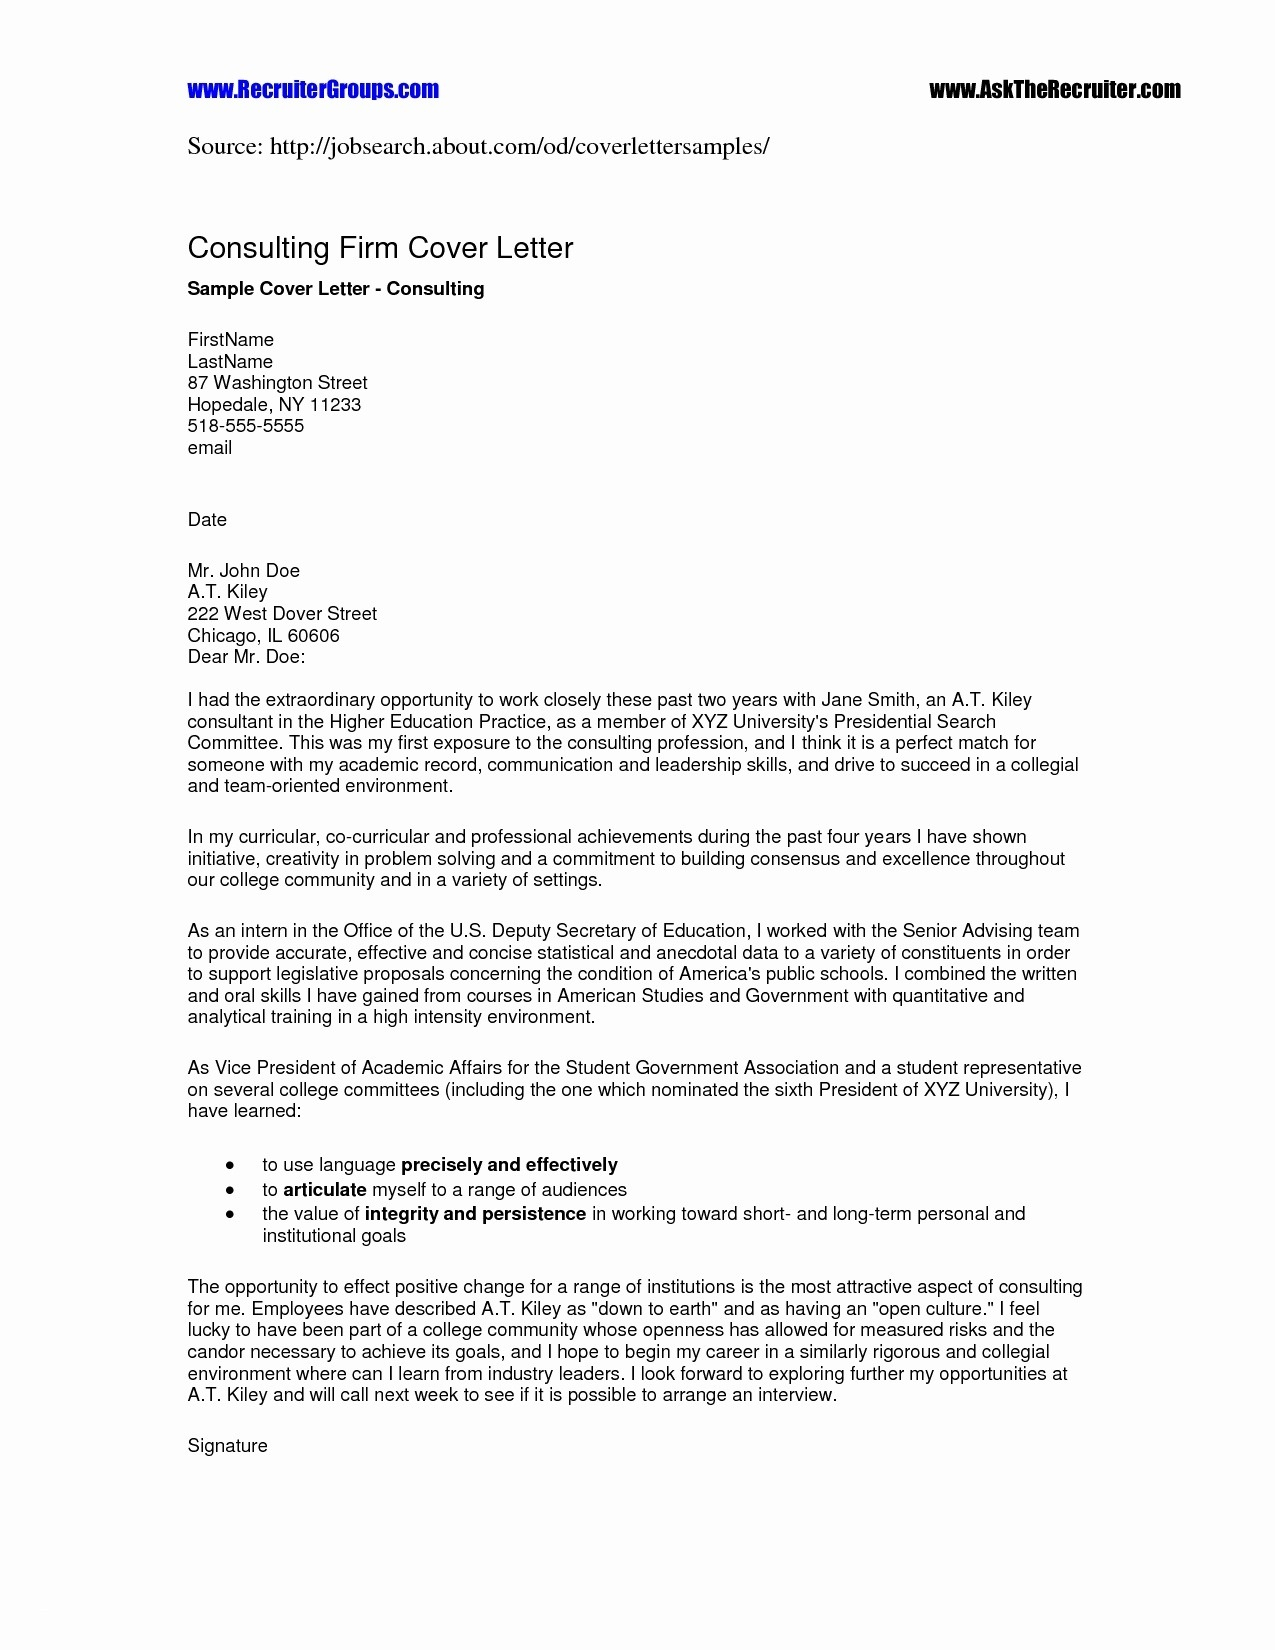 chronological order resume template Collection-Reverse Chronological Order Resume Example New Reverse Chronological Resume Template Word Awesome Resume For An 6-a